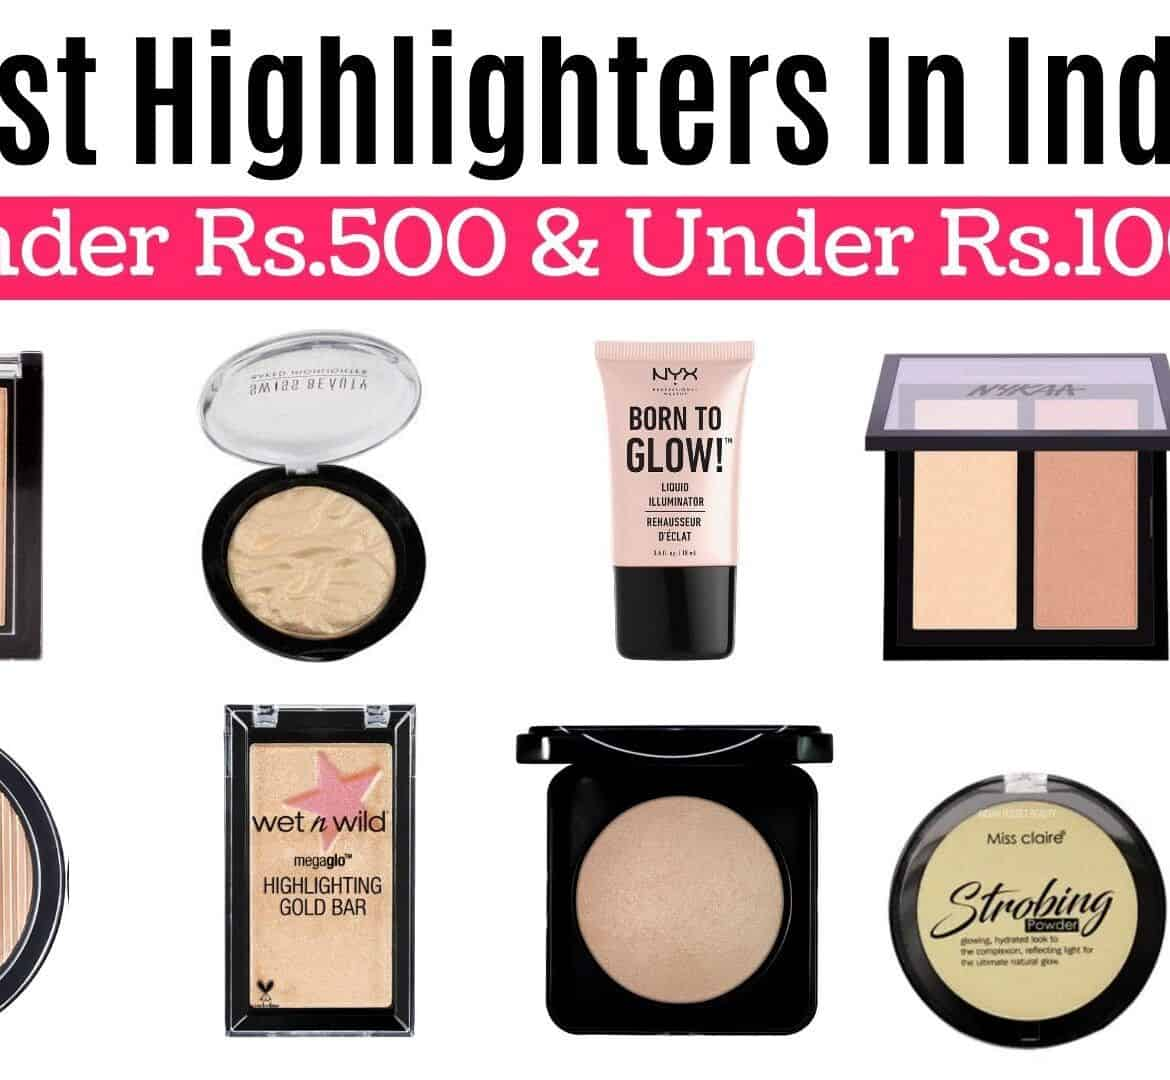 Best Highlighters In India Under Rs.500 & Under Rs.1000